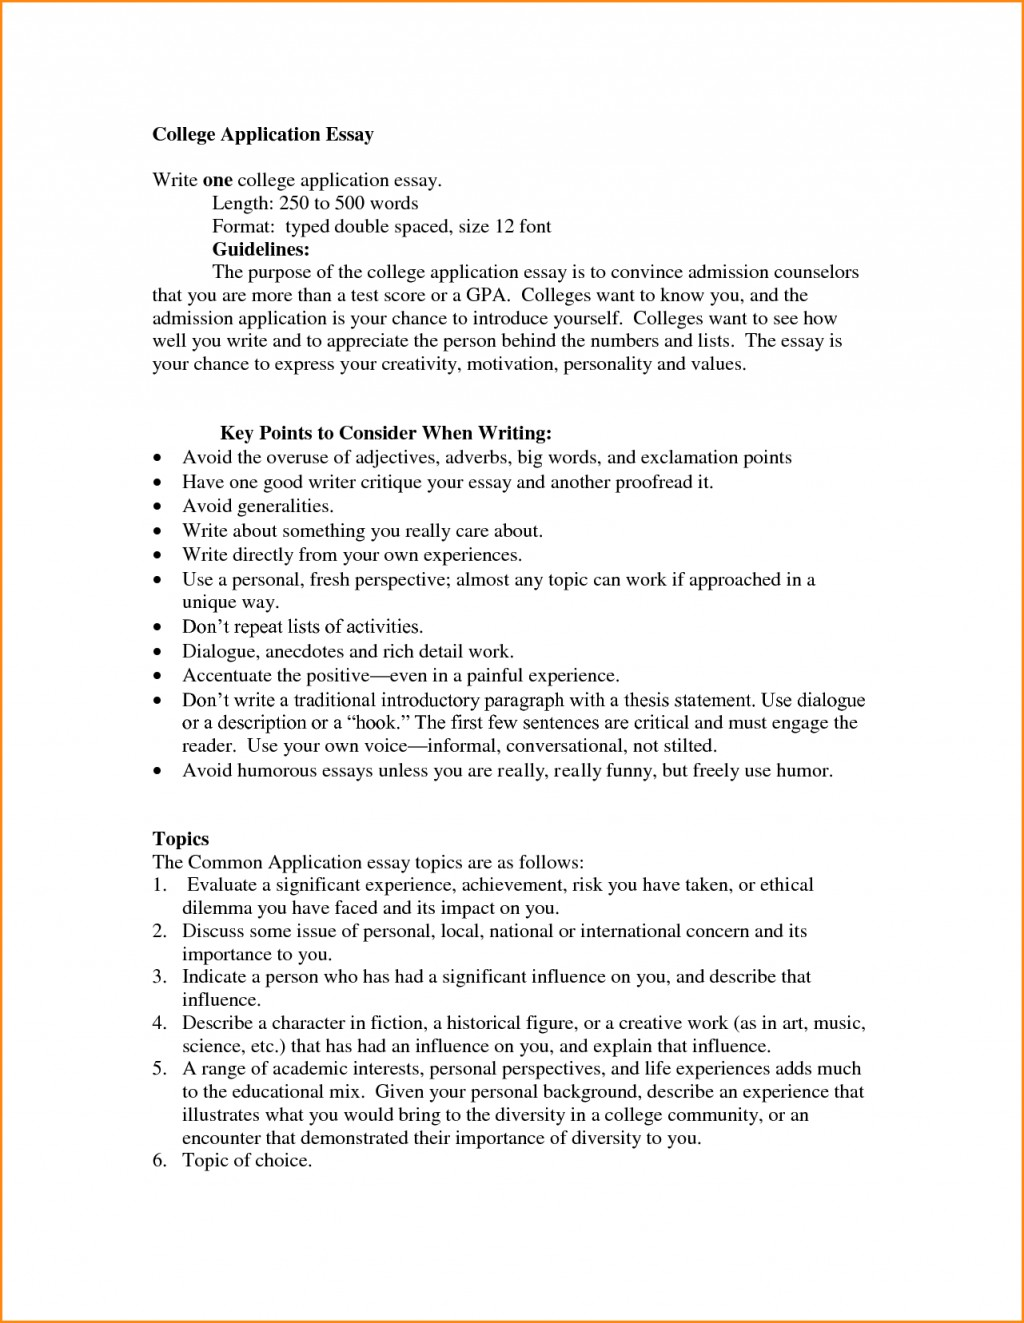 007 Essay Example Standard College Format Resume Cv Cover Letter L How To Awesome A Application Scholarship Your Large